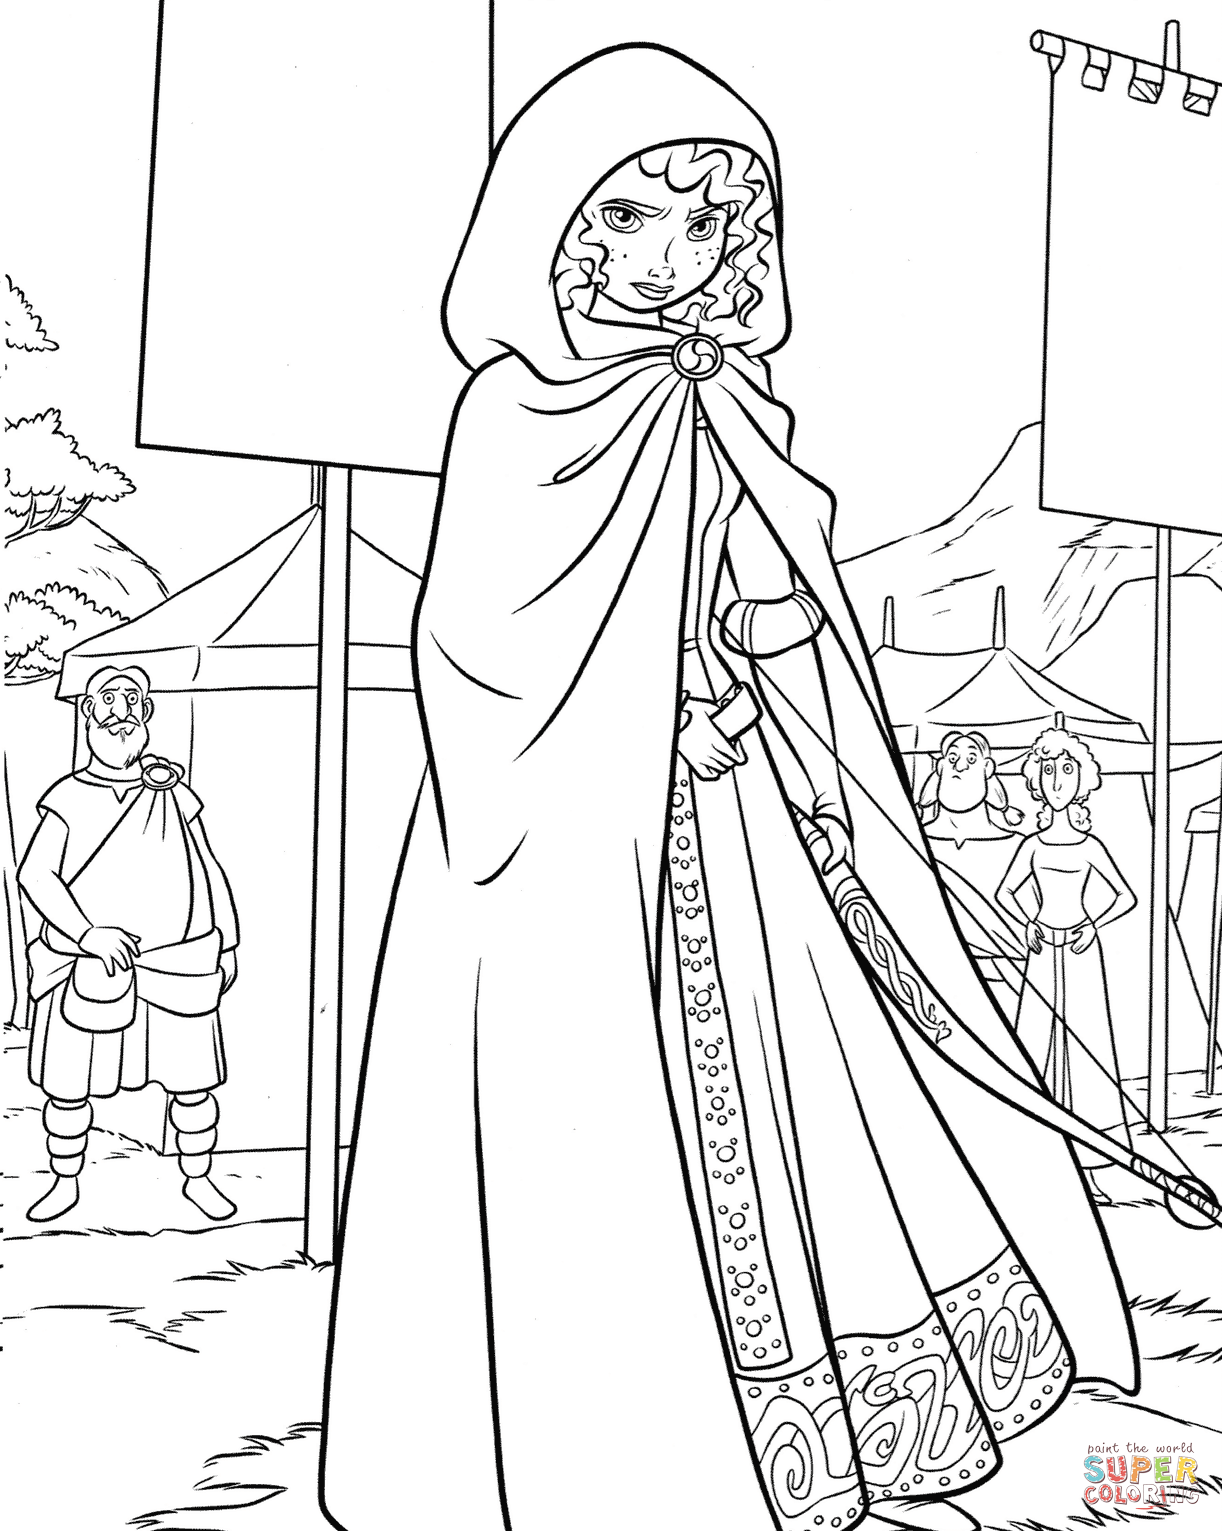 Princess Merida On A Highland Games Coloring Page